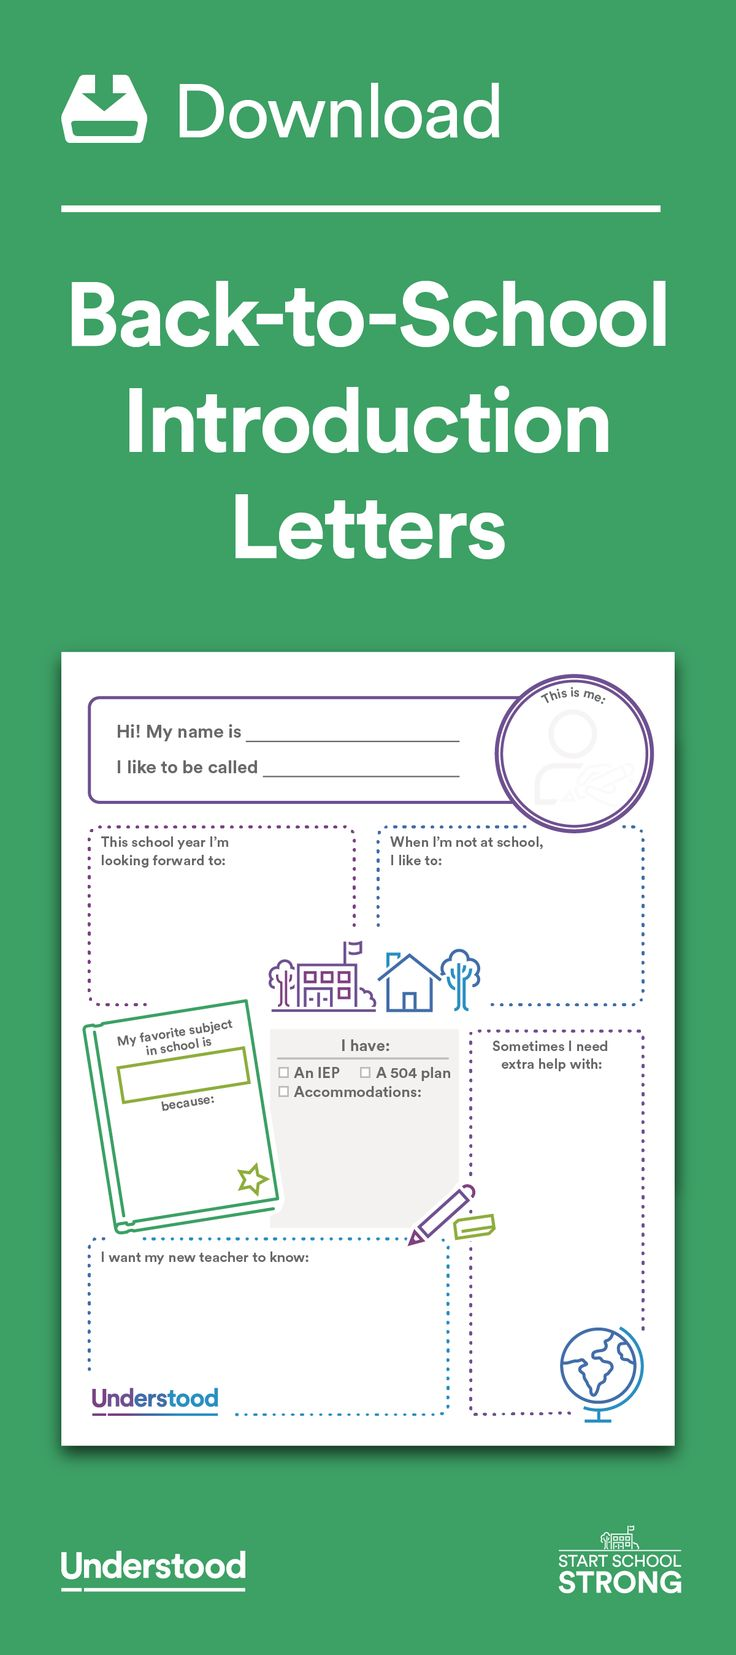 Writing a back-to-school introduction letter to your child's teacher can help get the school year off to a good start. It's also a great way to start building a positive relationship.